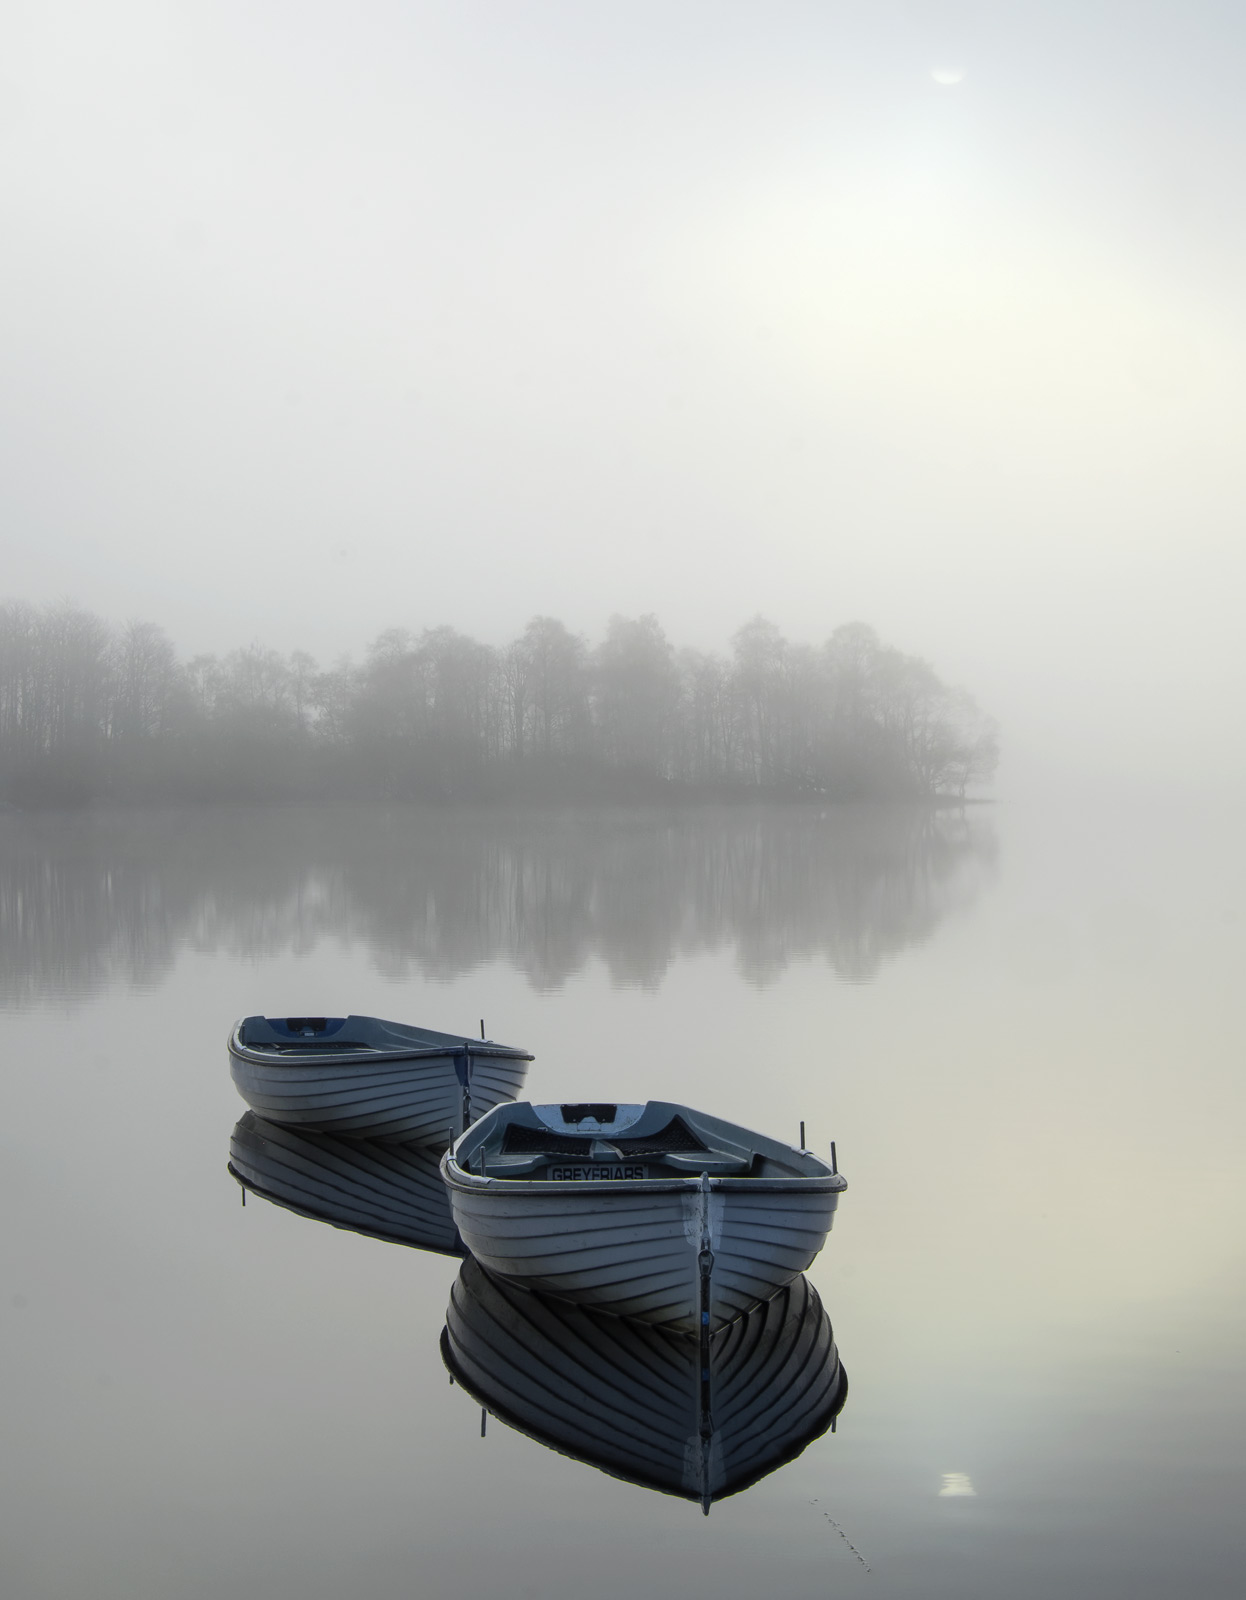 Languid Rusky 2, Loch Rusky, Trossachs, Scotland, mist, gorgeous, magic, morning, sun, partially concealed, pale blue, b, photo